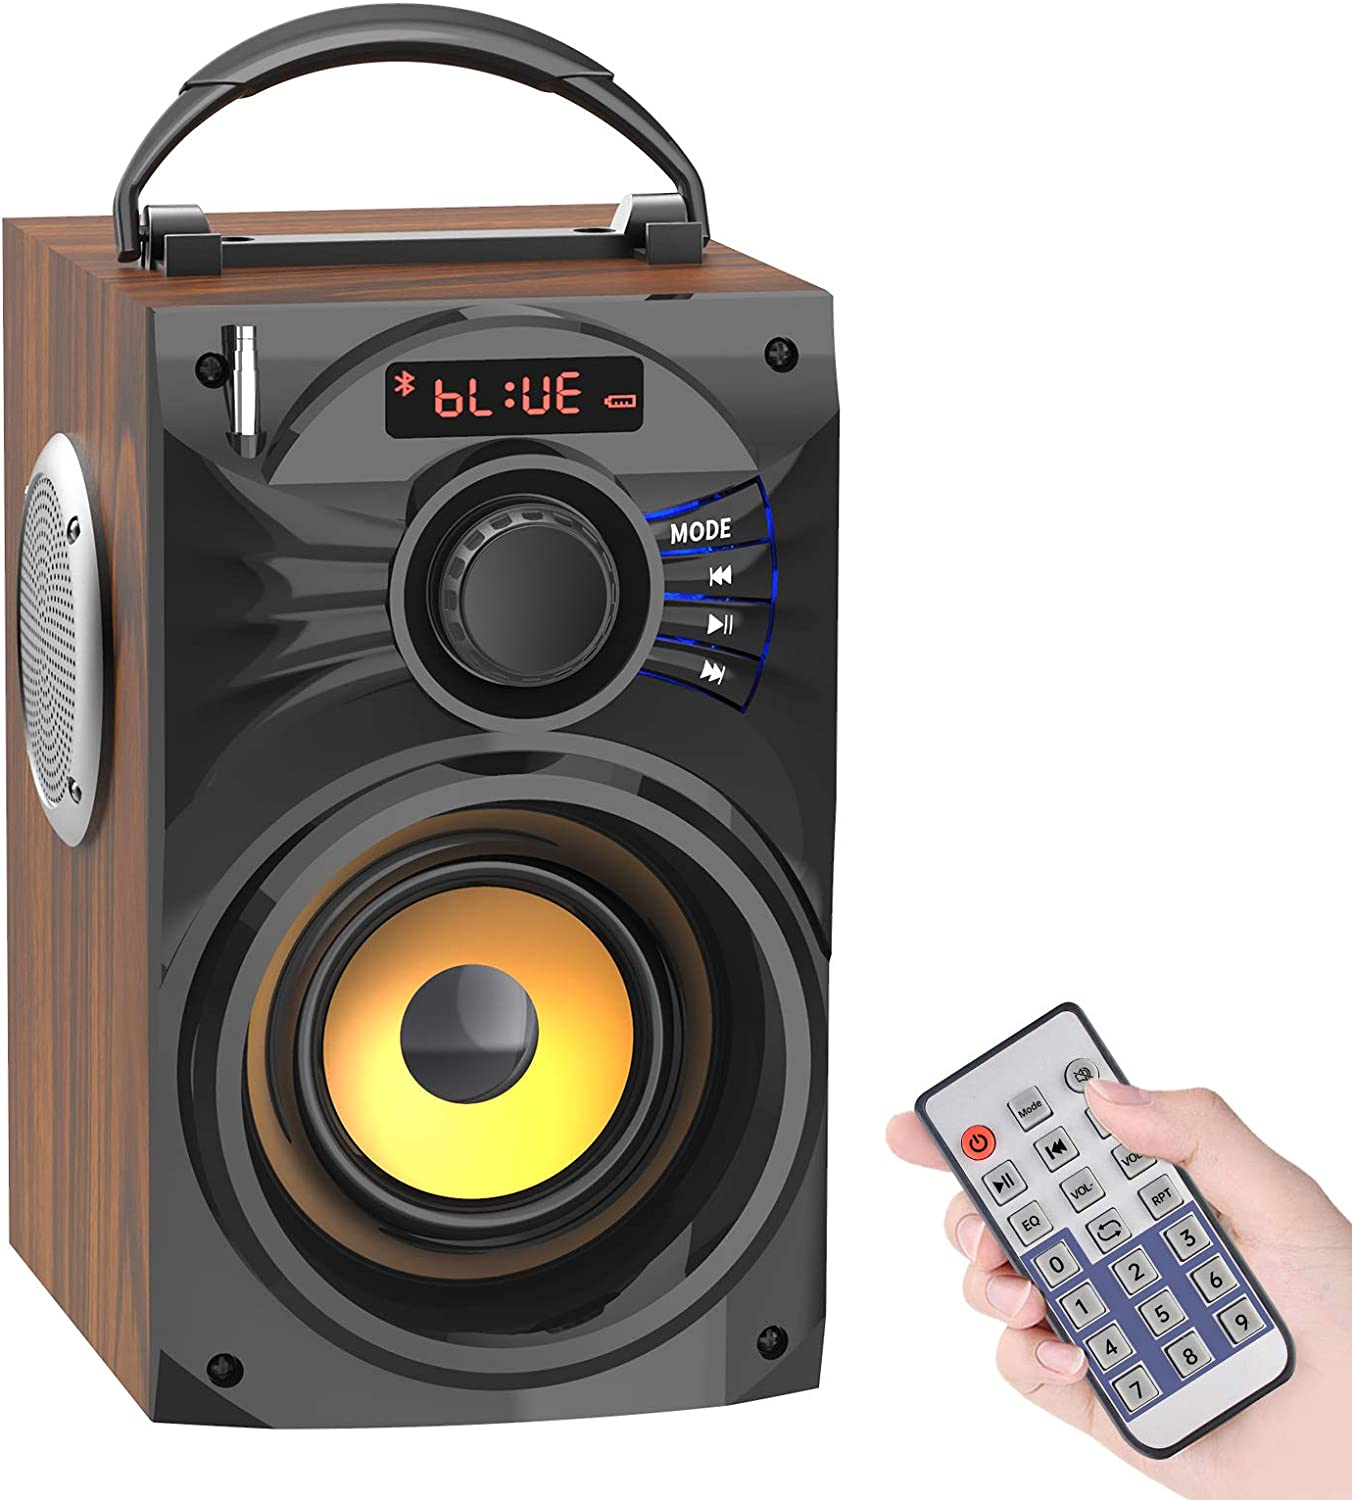 Portable Bluetooth Speakers with Subwoofer Rich Bass Wireless Speaker Support Remote Control FM Radio TF Card LCD Display Outdoor/Indoor Party Speakers for Home PC Camping Travel